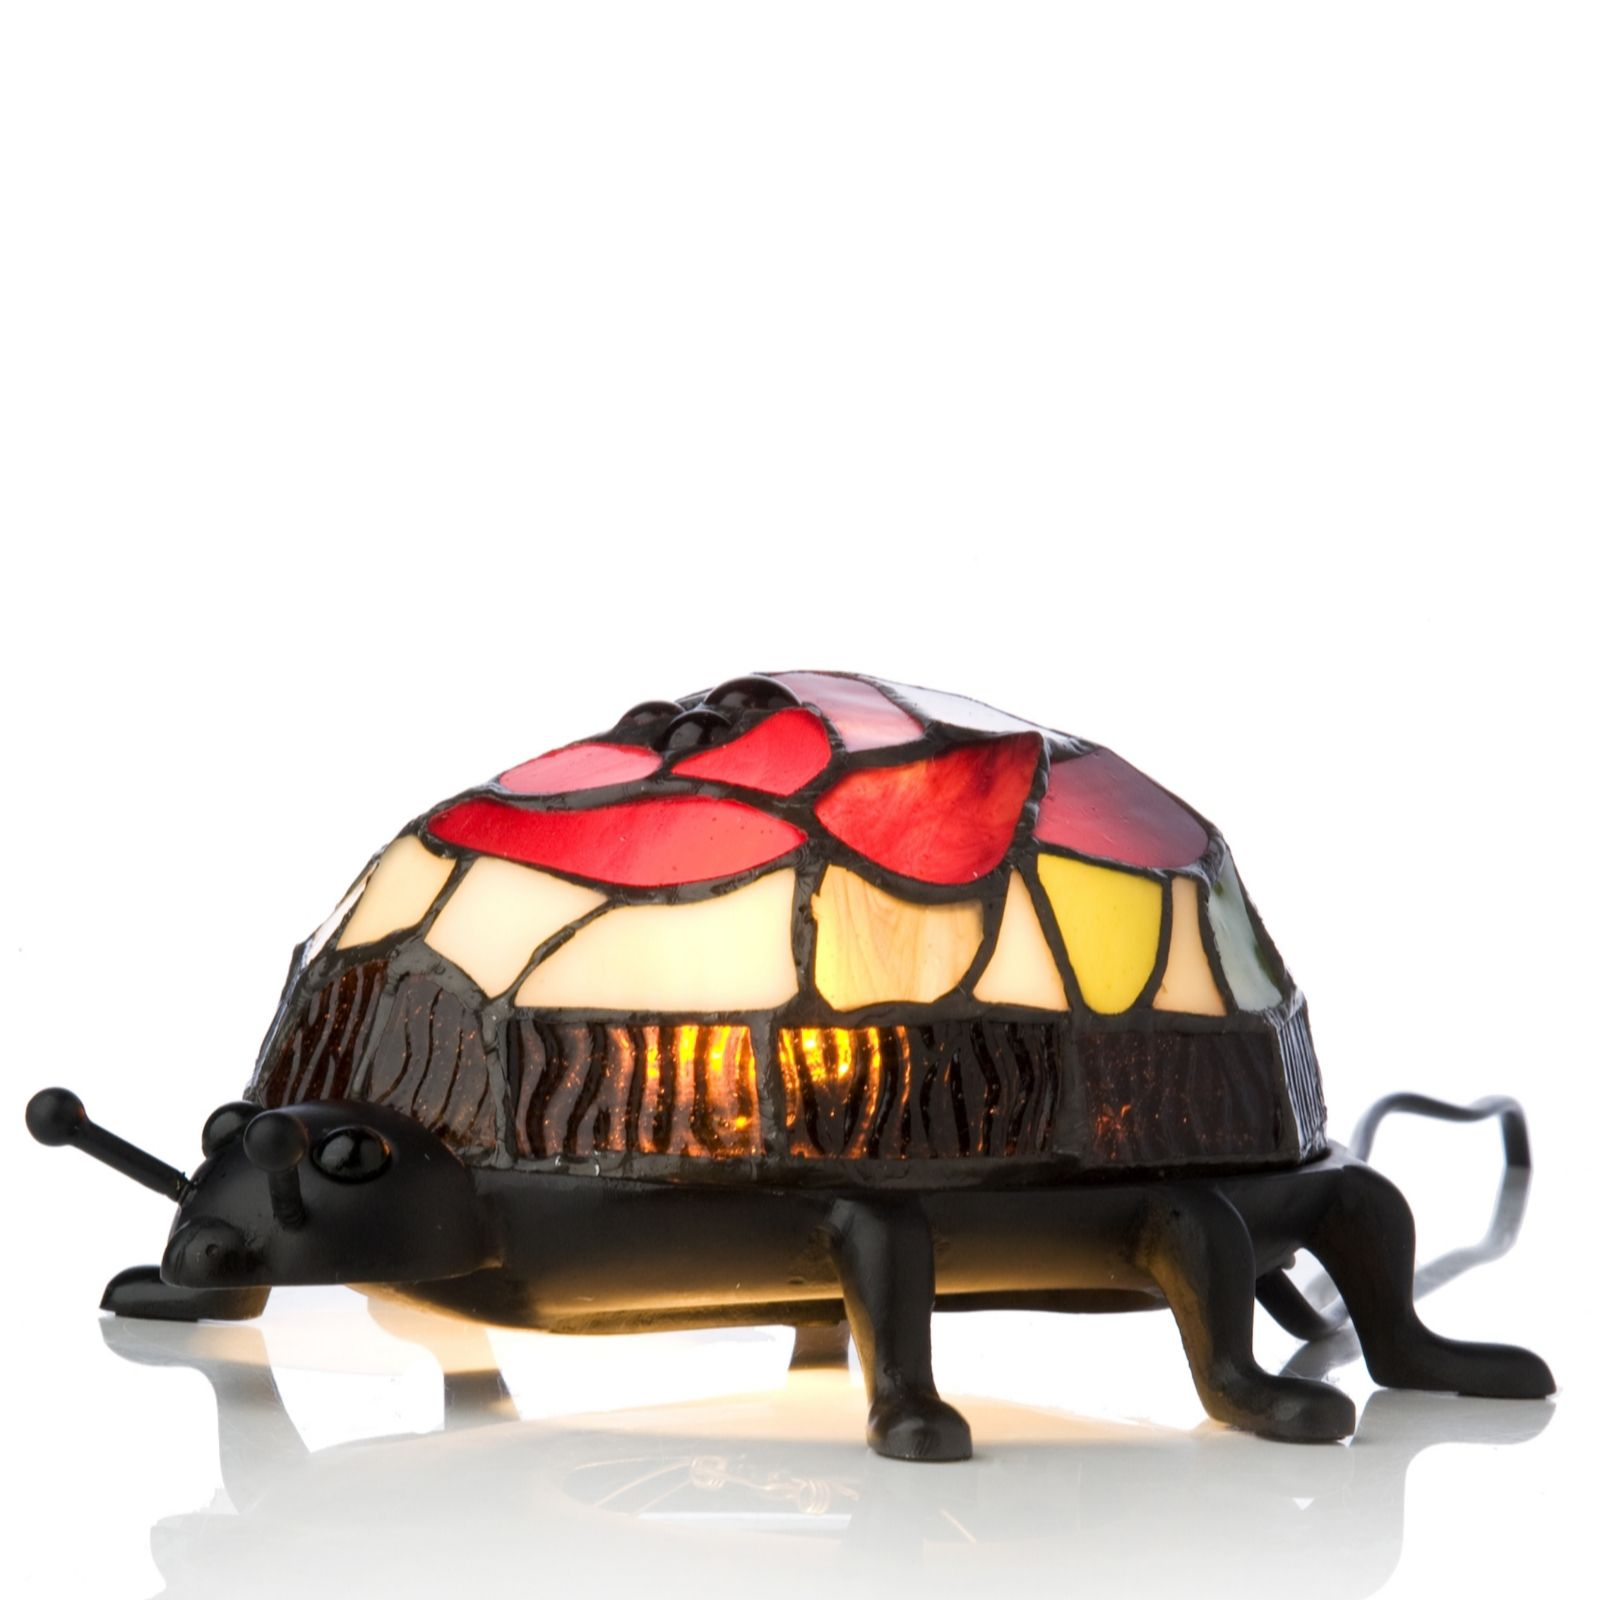 Tiffany Style Handcrafted Ladybird Novelty Lamp   QVC UK